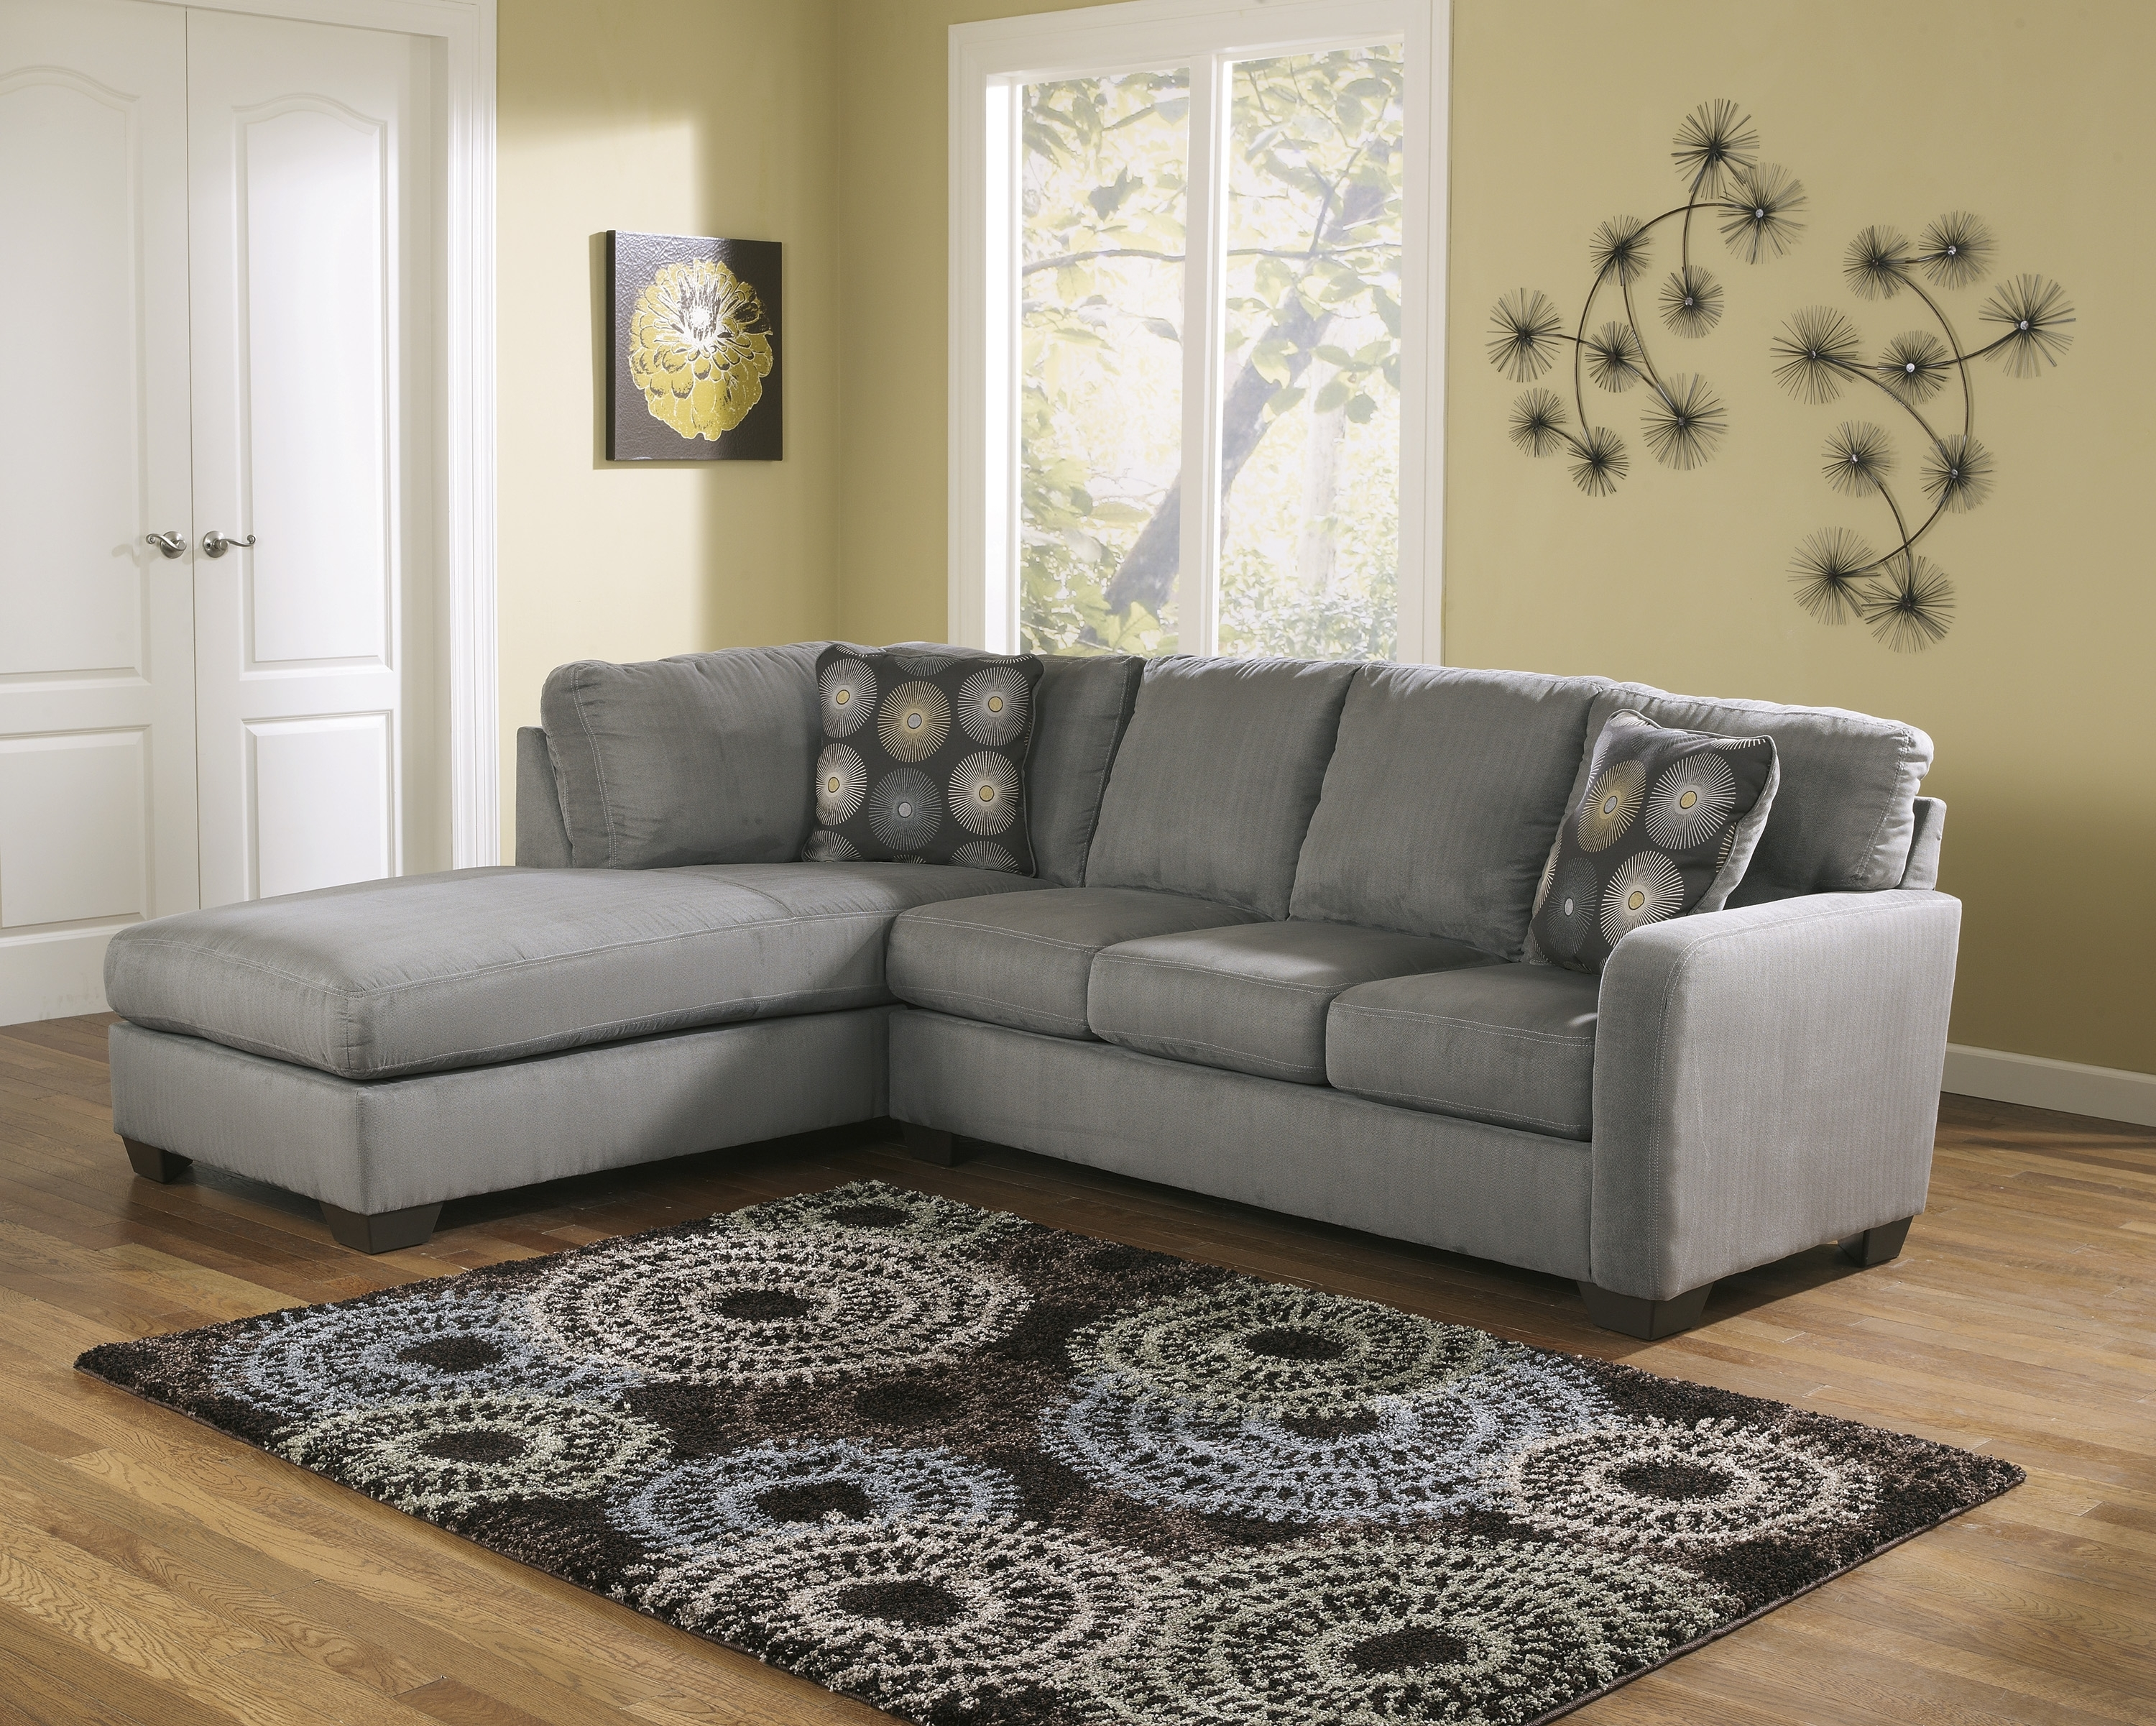 2019 Wichita Ks Sectional Sofas Intended For Cuisine: Rsfchaisesectionalashley Furniture In Wichita Ks Rsf (View 1 of 20)